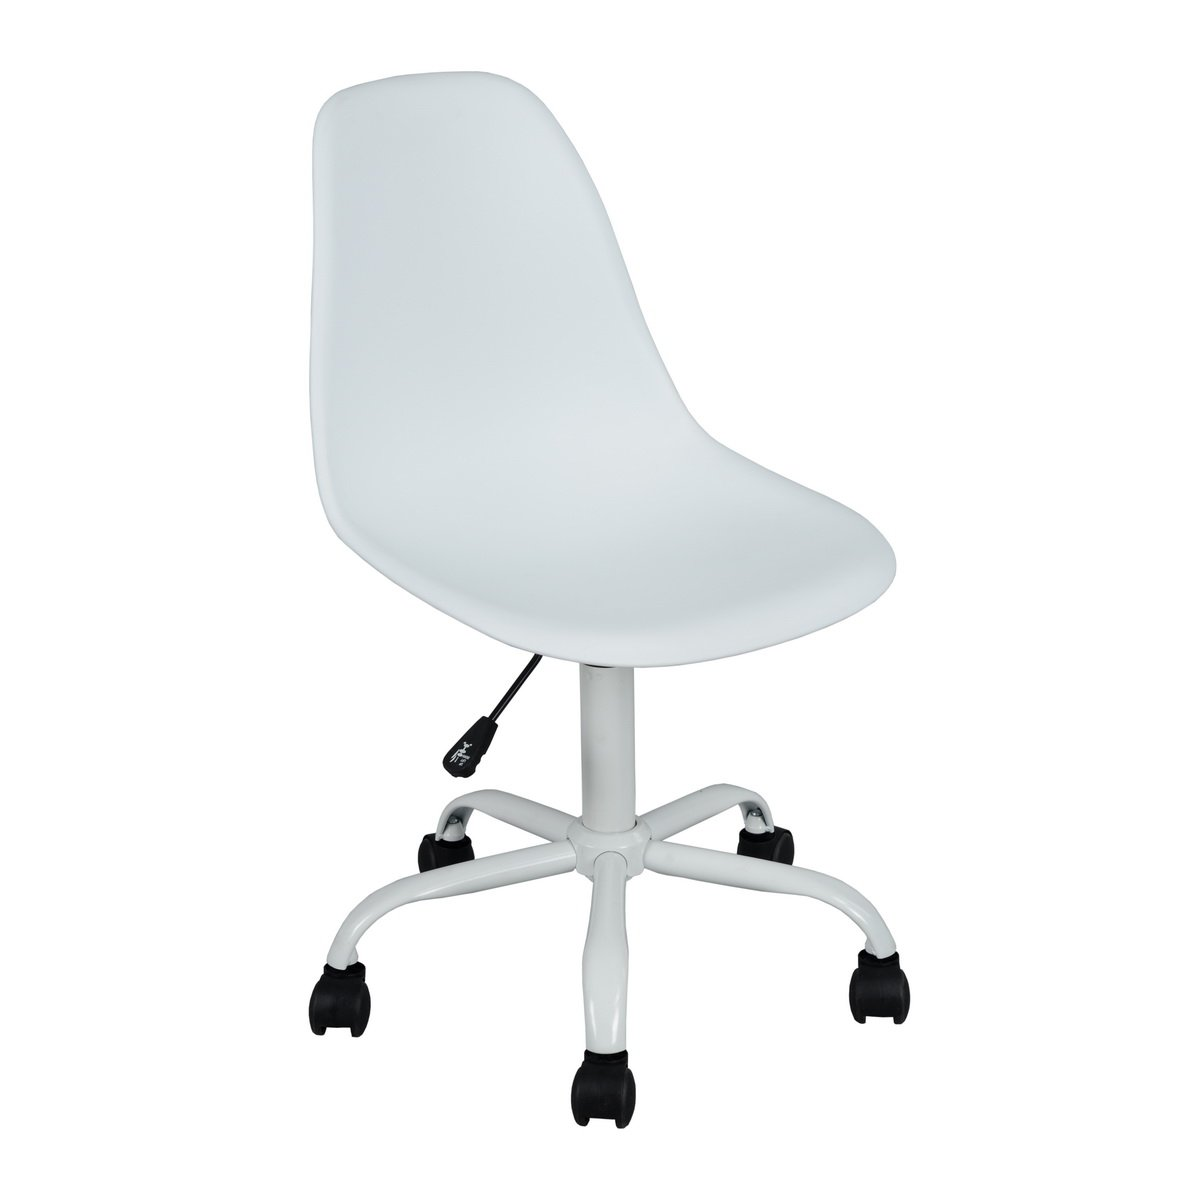 FurnitureR Eames Computer Desk Chair, Mid Back Adjustable Swivel Armless Ergonomic Home Office Side Chair, White 39F